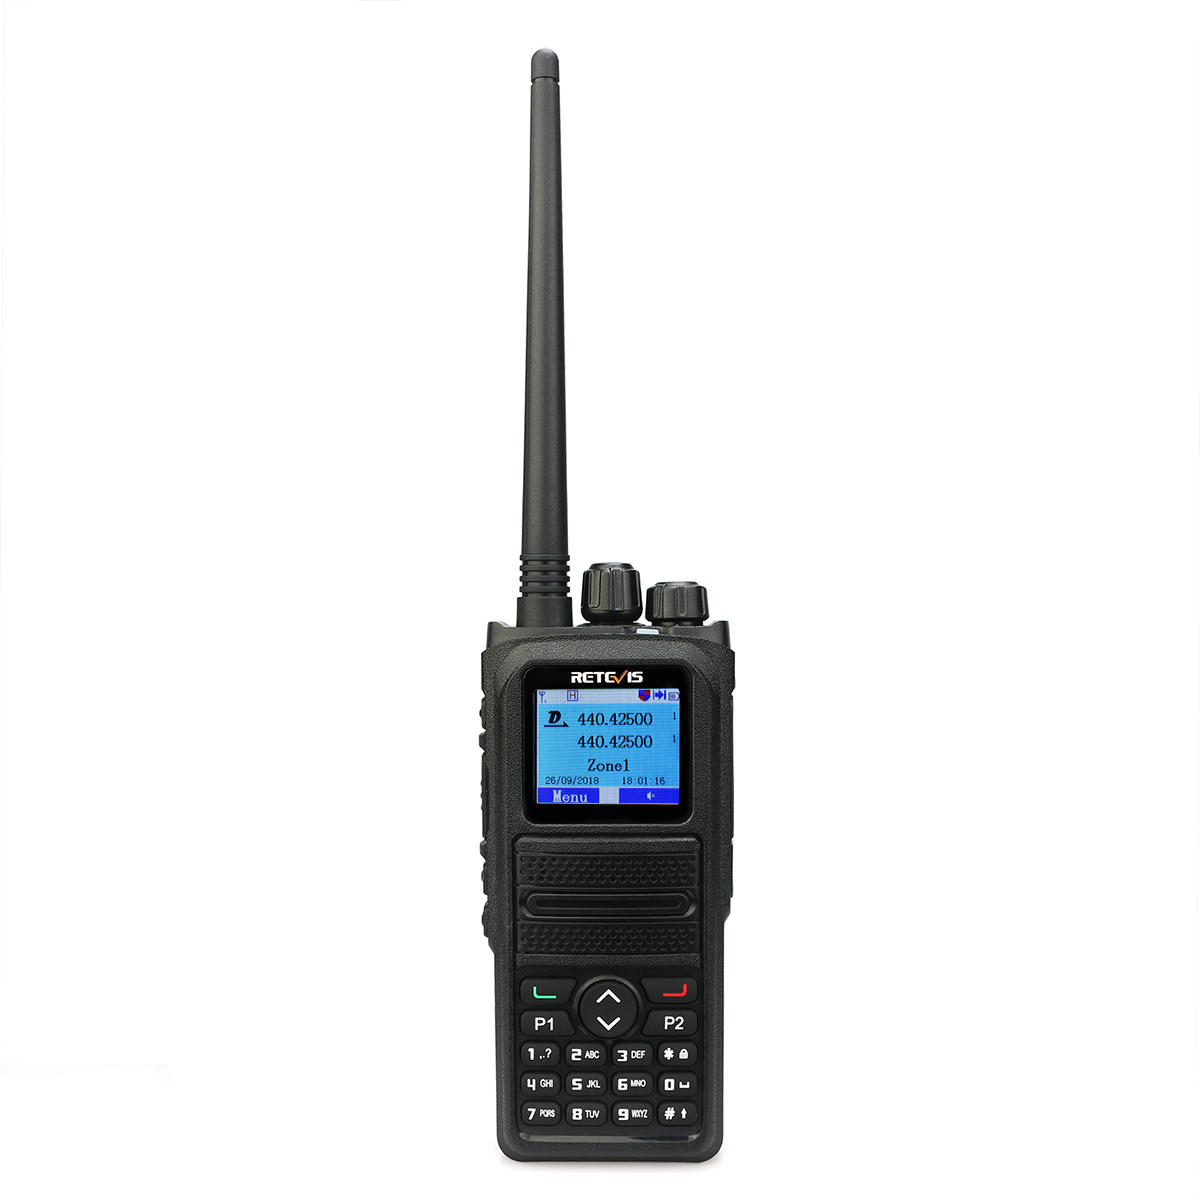 Retevis RT84 DMR Dual Band Walkie Talkie 5W VHF UHF DMR Digital/Analog Two-way Radio Transceiver